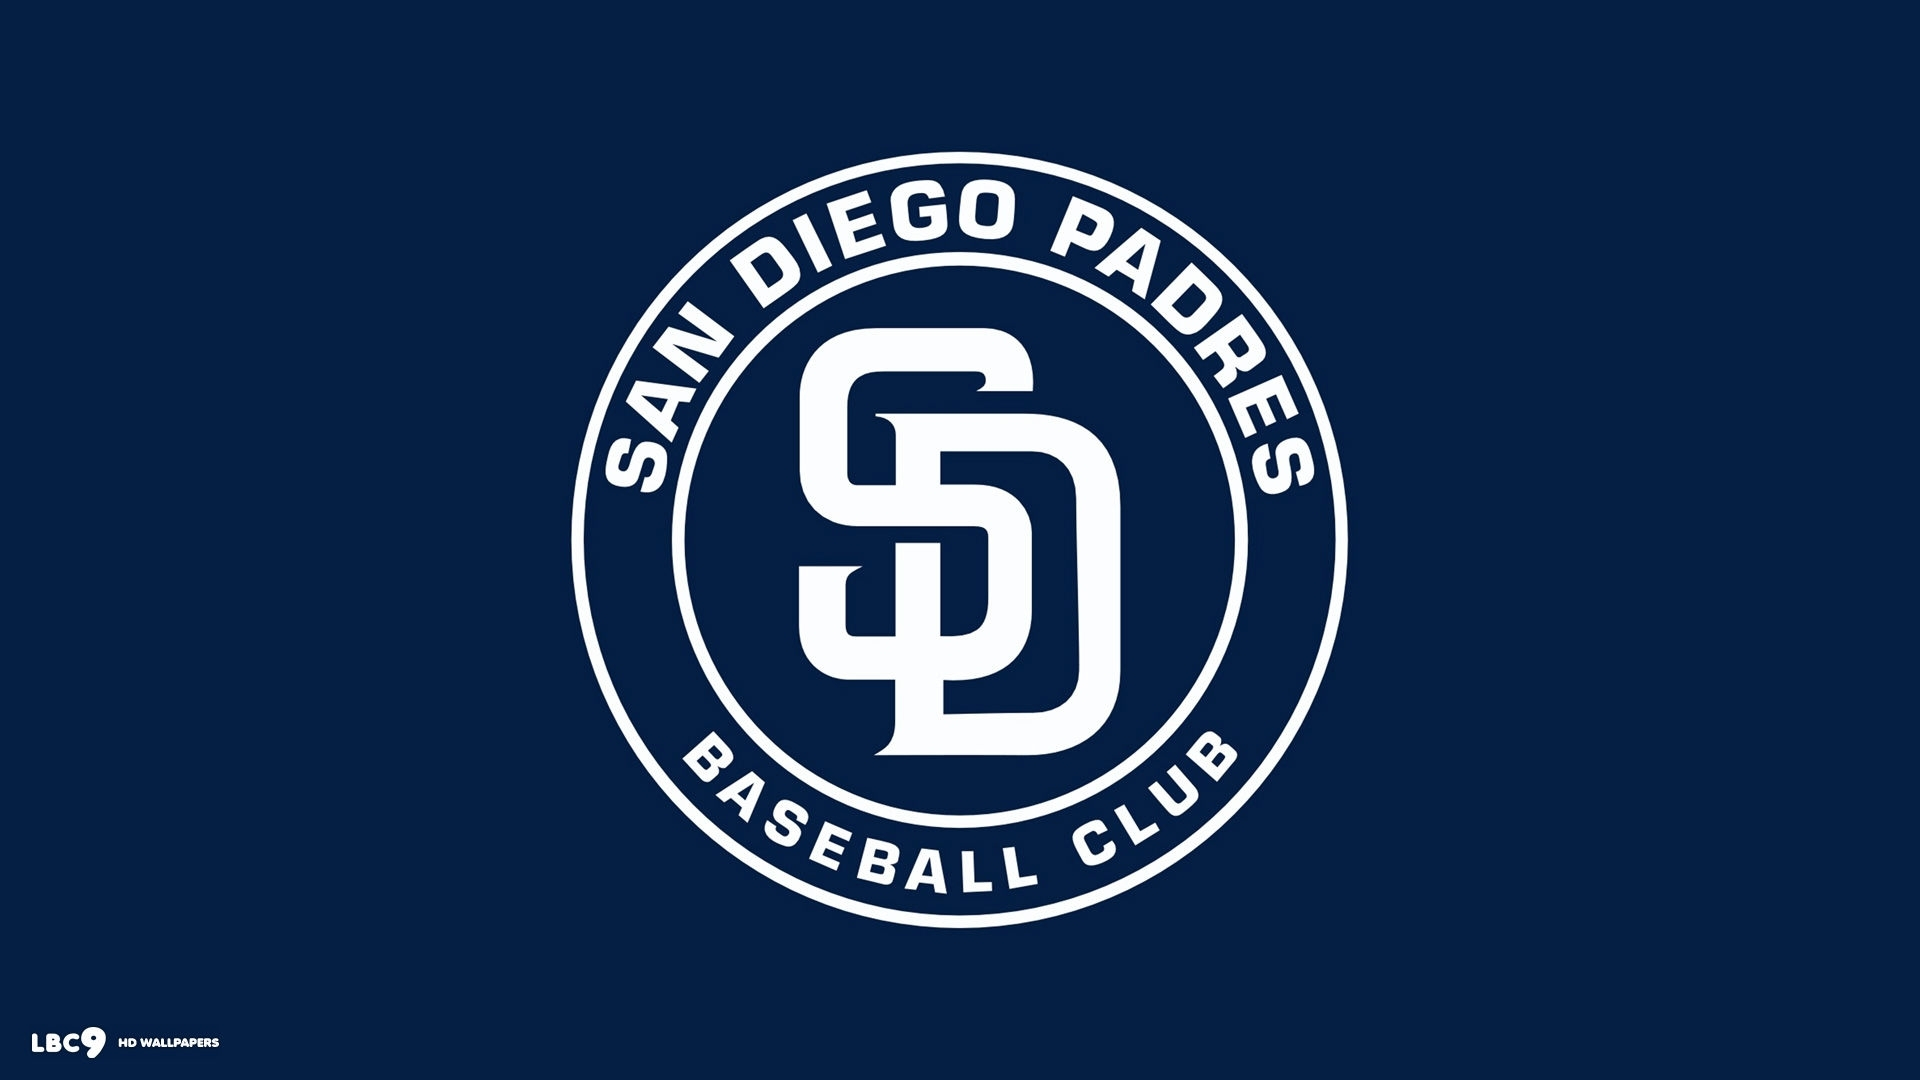 san diego padres wallpaper 1/4 | mlb teams hd backgrounds